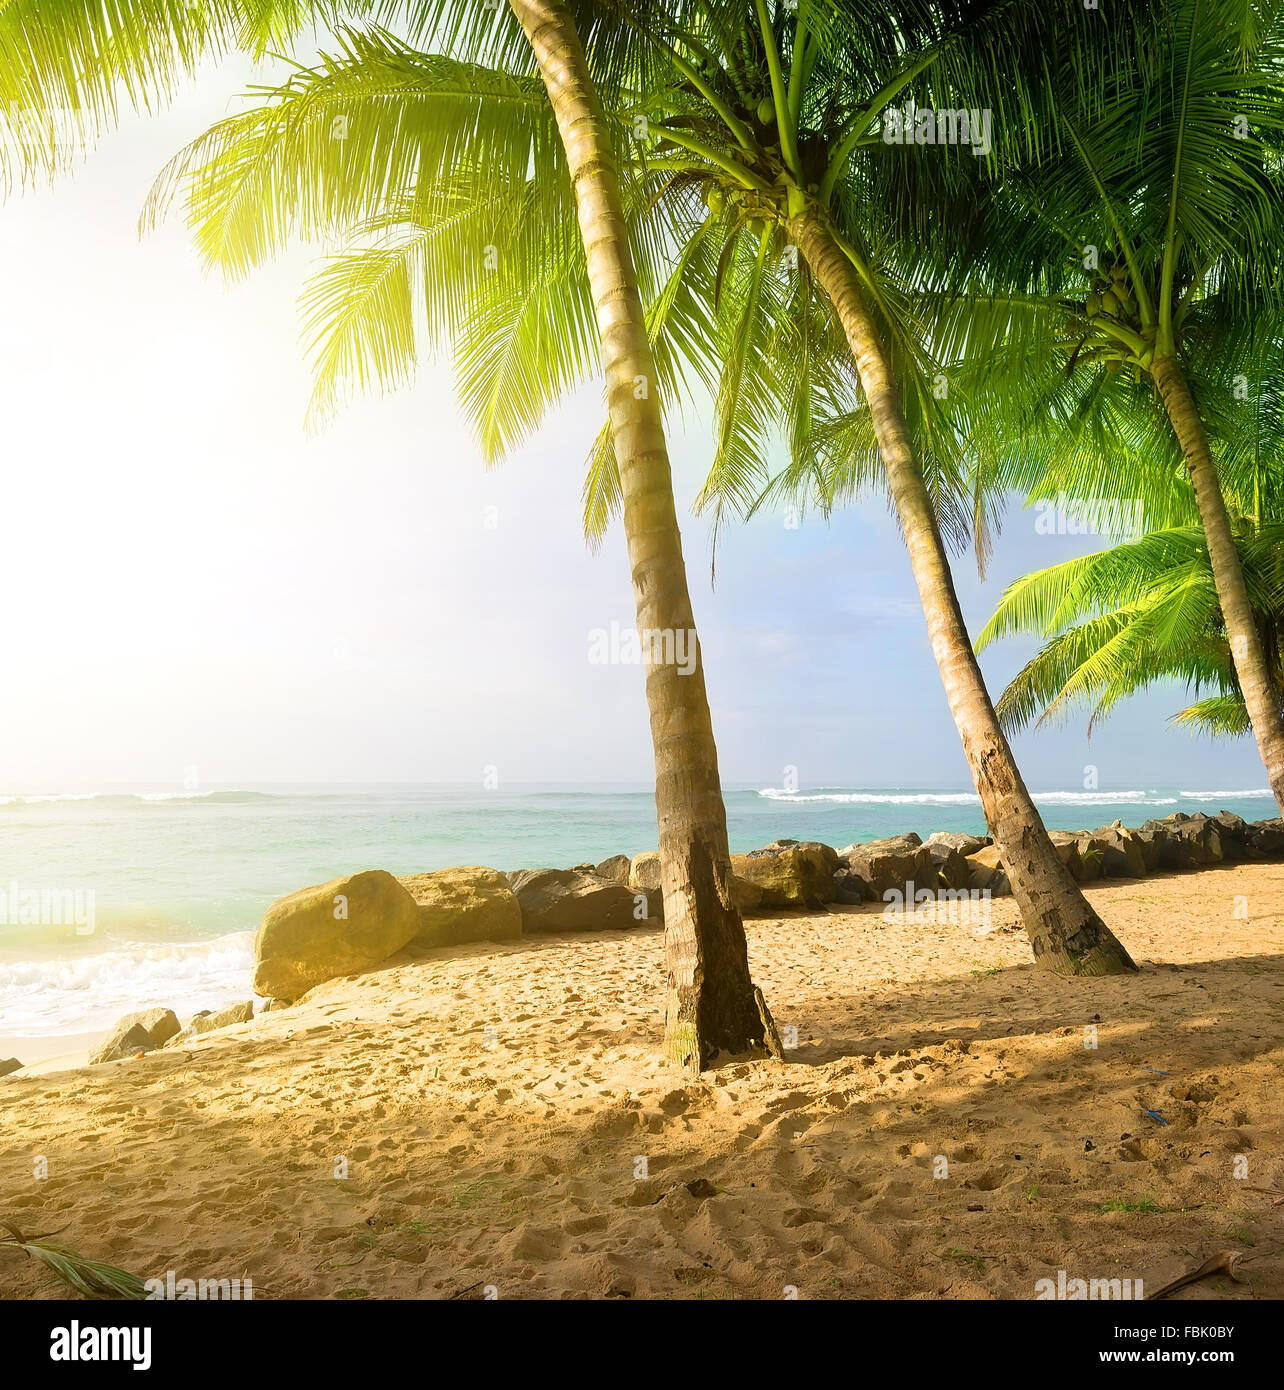 Sunrise on a sandy beach near the ocean in Gala - Stock Image